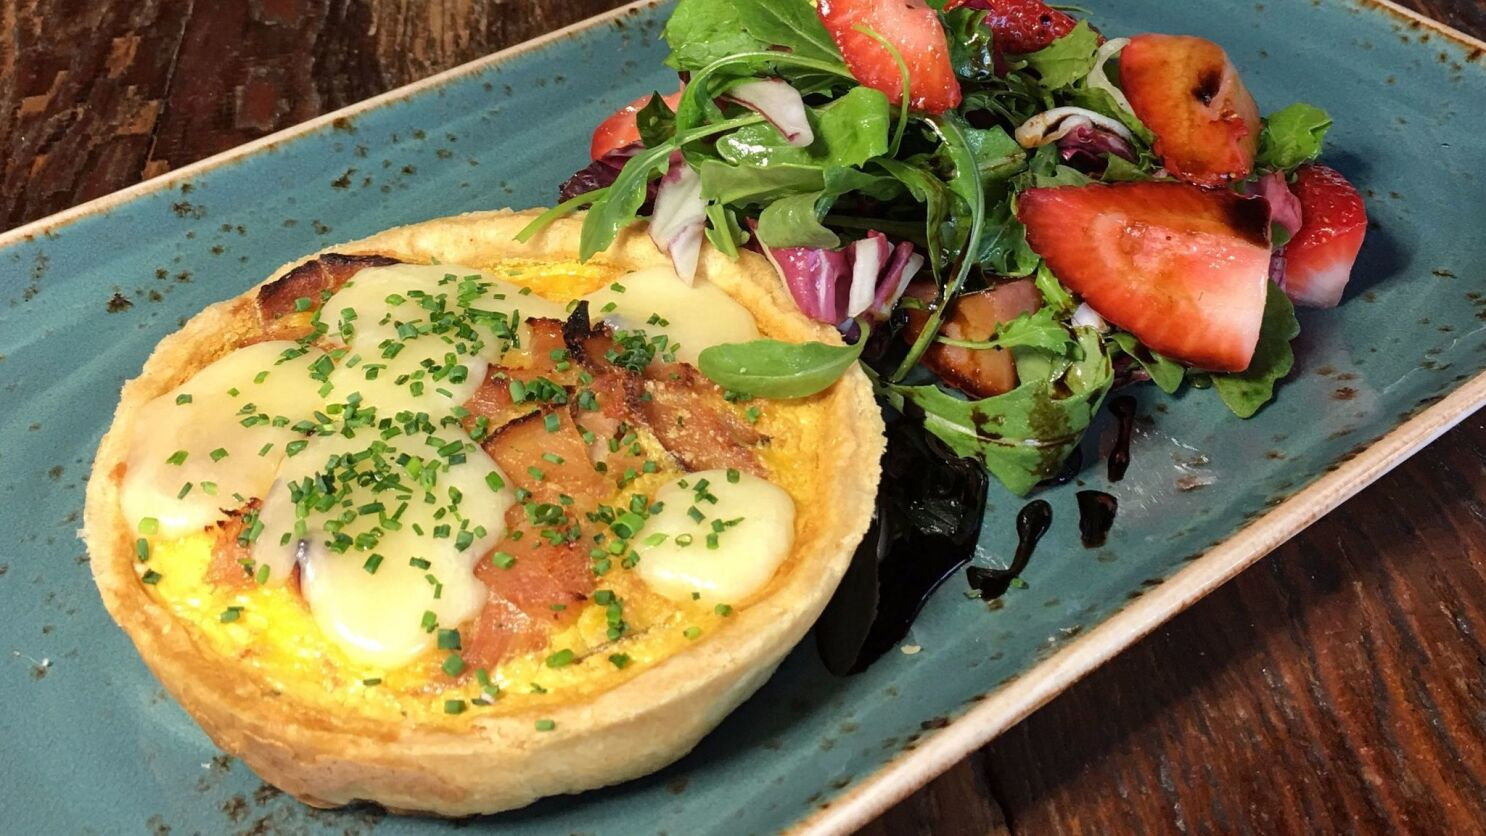 Amazon Queen Bleu top 47 san diego brunches for mother's day - the san diego